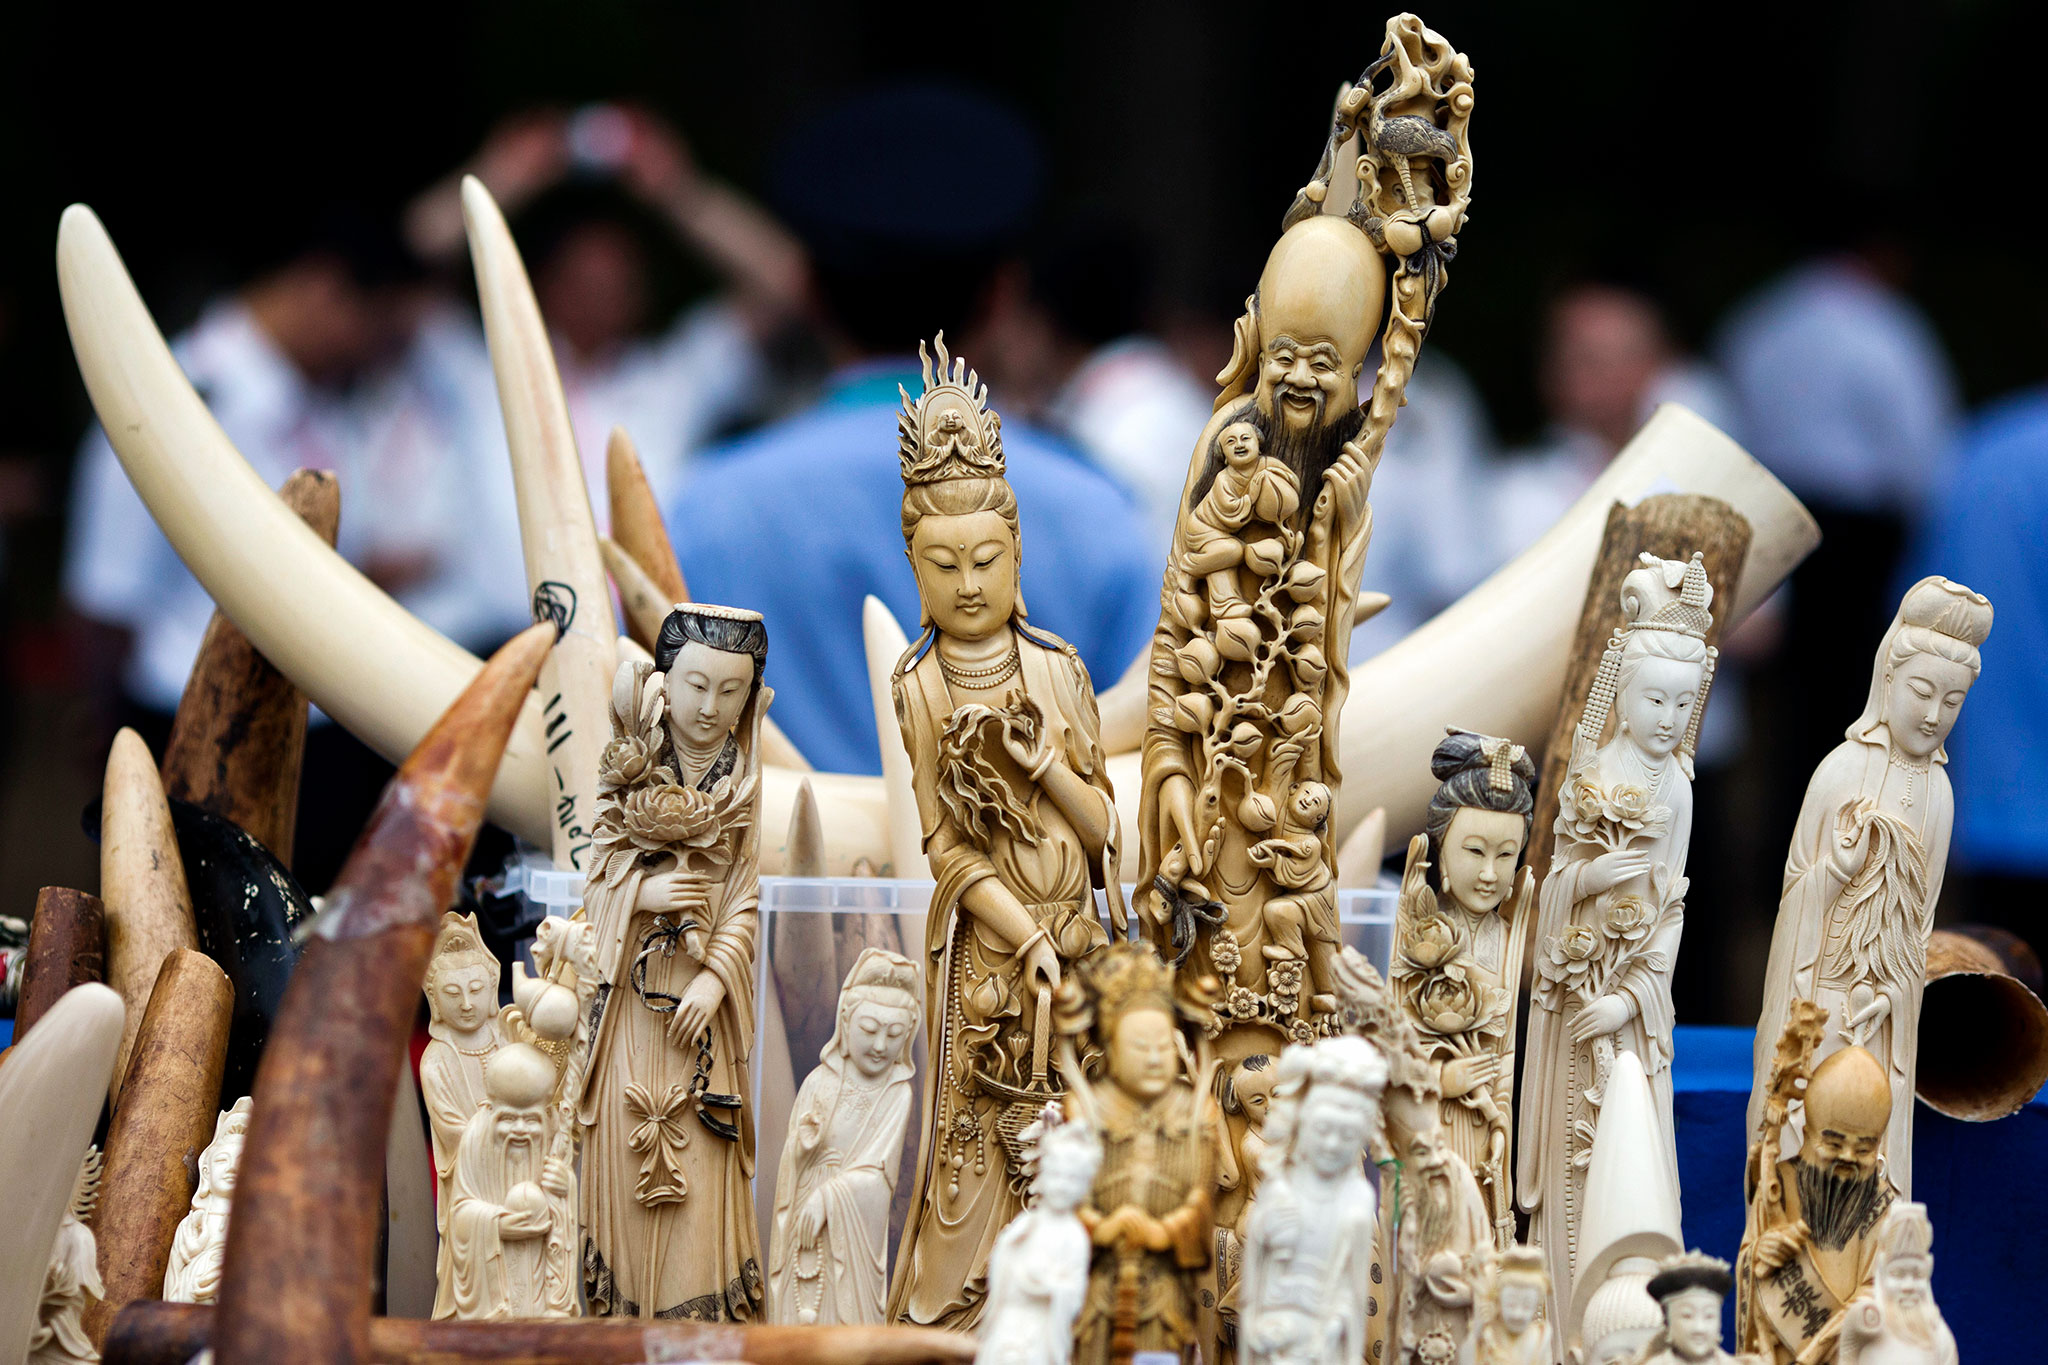 Ivory products are prepared for destruction during a ceremony in Beijing, Friday, May 29, 2015. China's State Forestry Administration and General Administration of Customs officials presided over a ceremony to destroy more than 660 kilograms of ivory that was seized after being smuggled into the country, as part of a crackdown on the illegal trade. (AP Photo/Ng Han Guan)